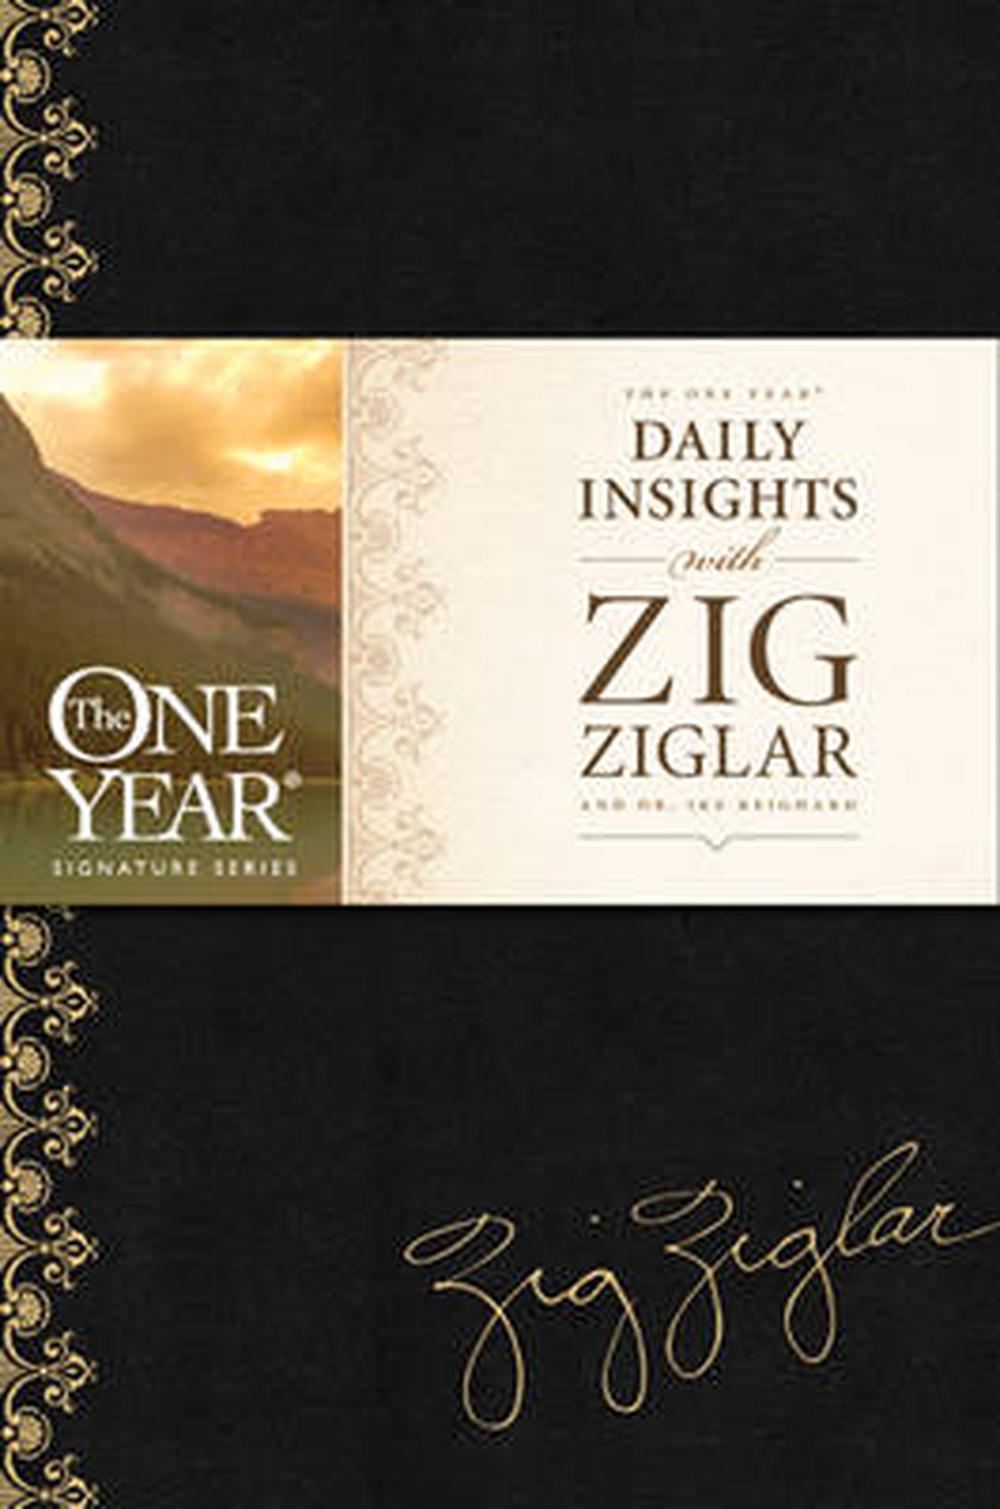 One Year Daily Insights With Zig Ziglar, The